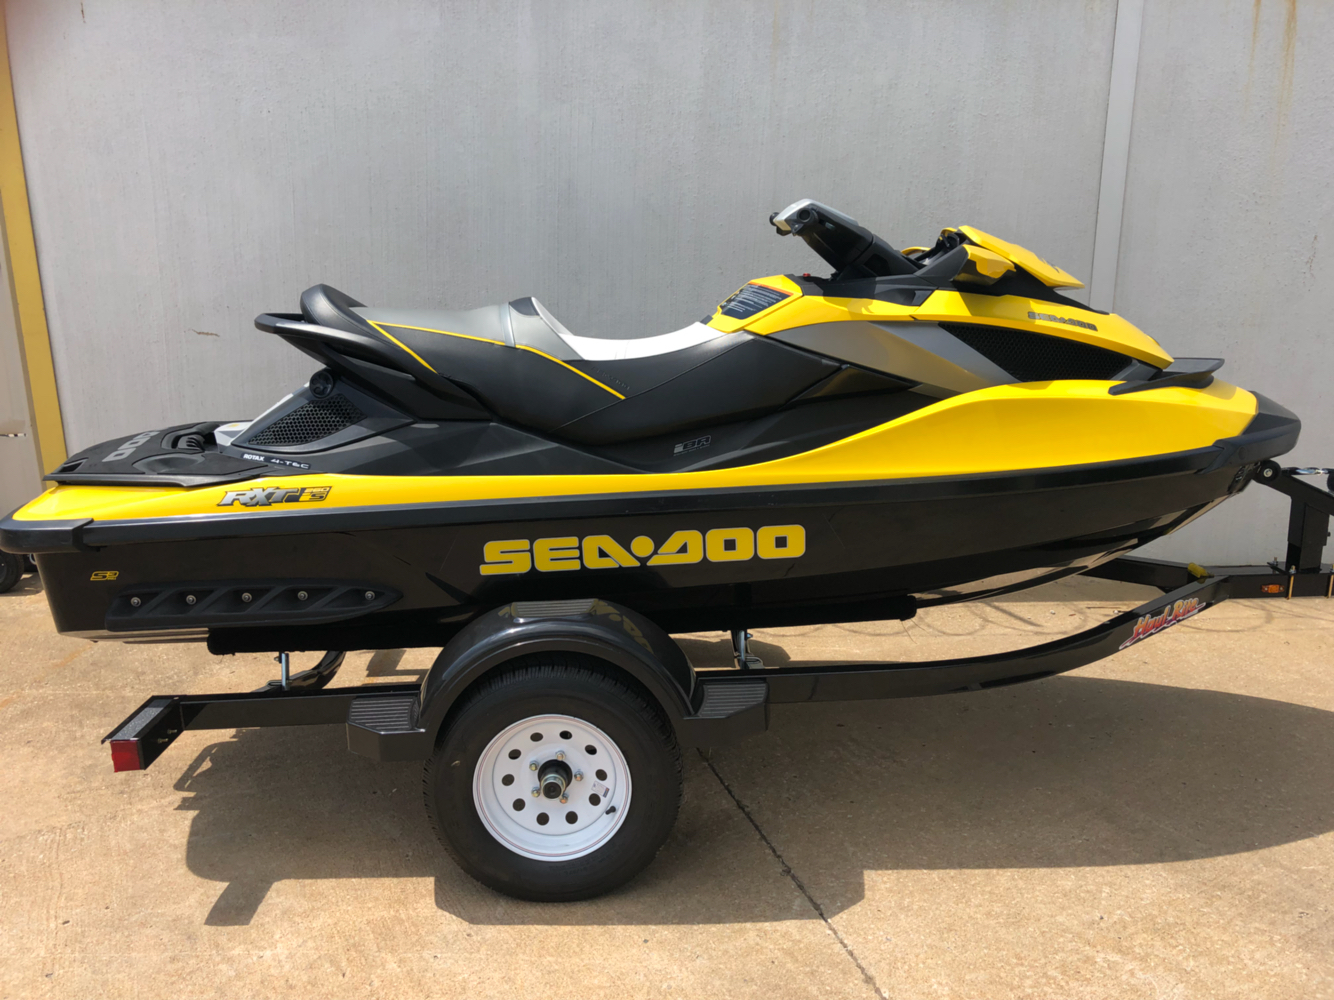 2011 Sea-Doo RXT® iS™ 260 in Broken Arrow, Oklahoma - Photo 1